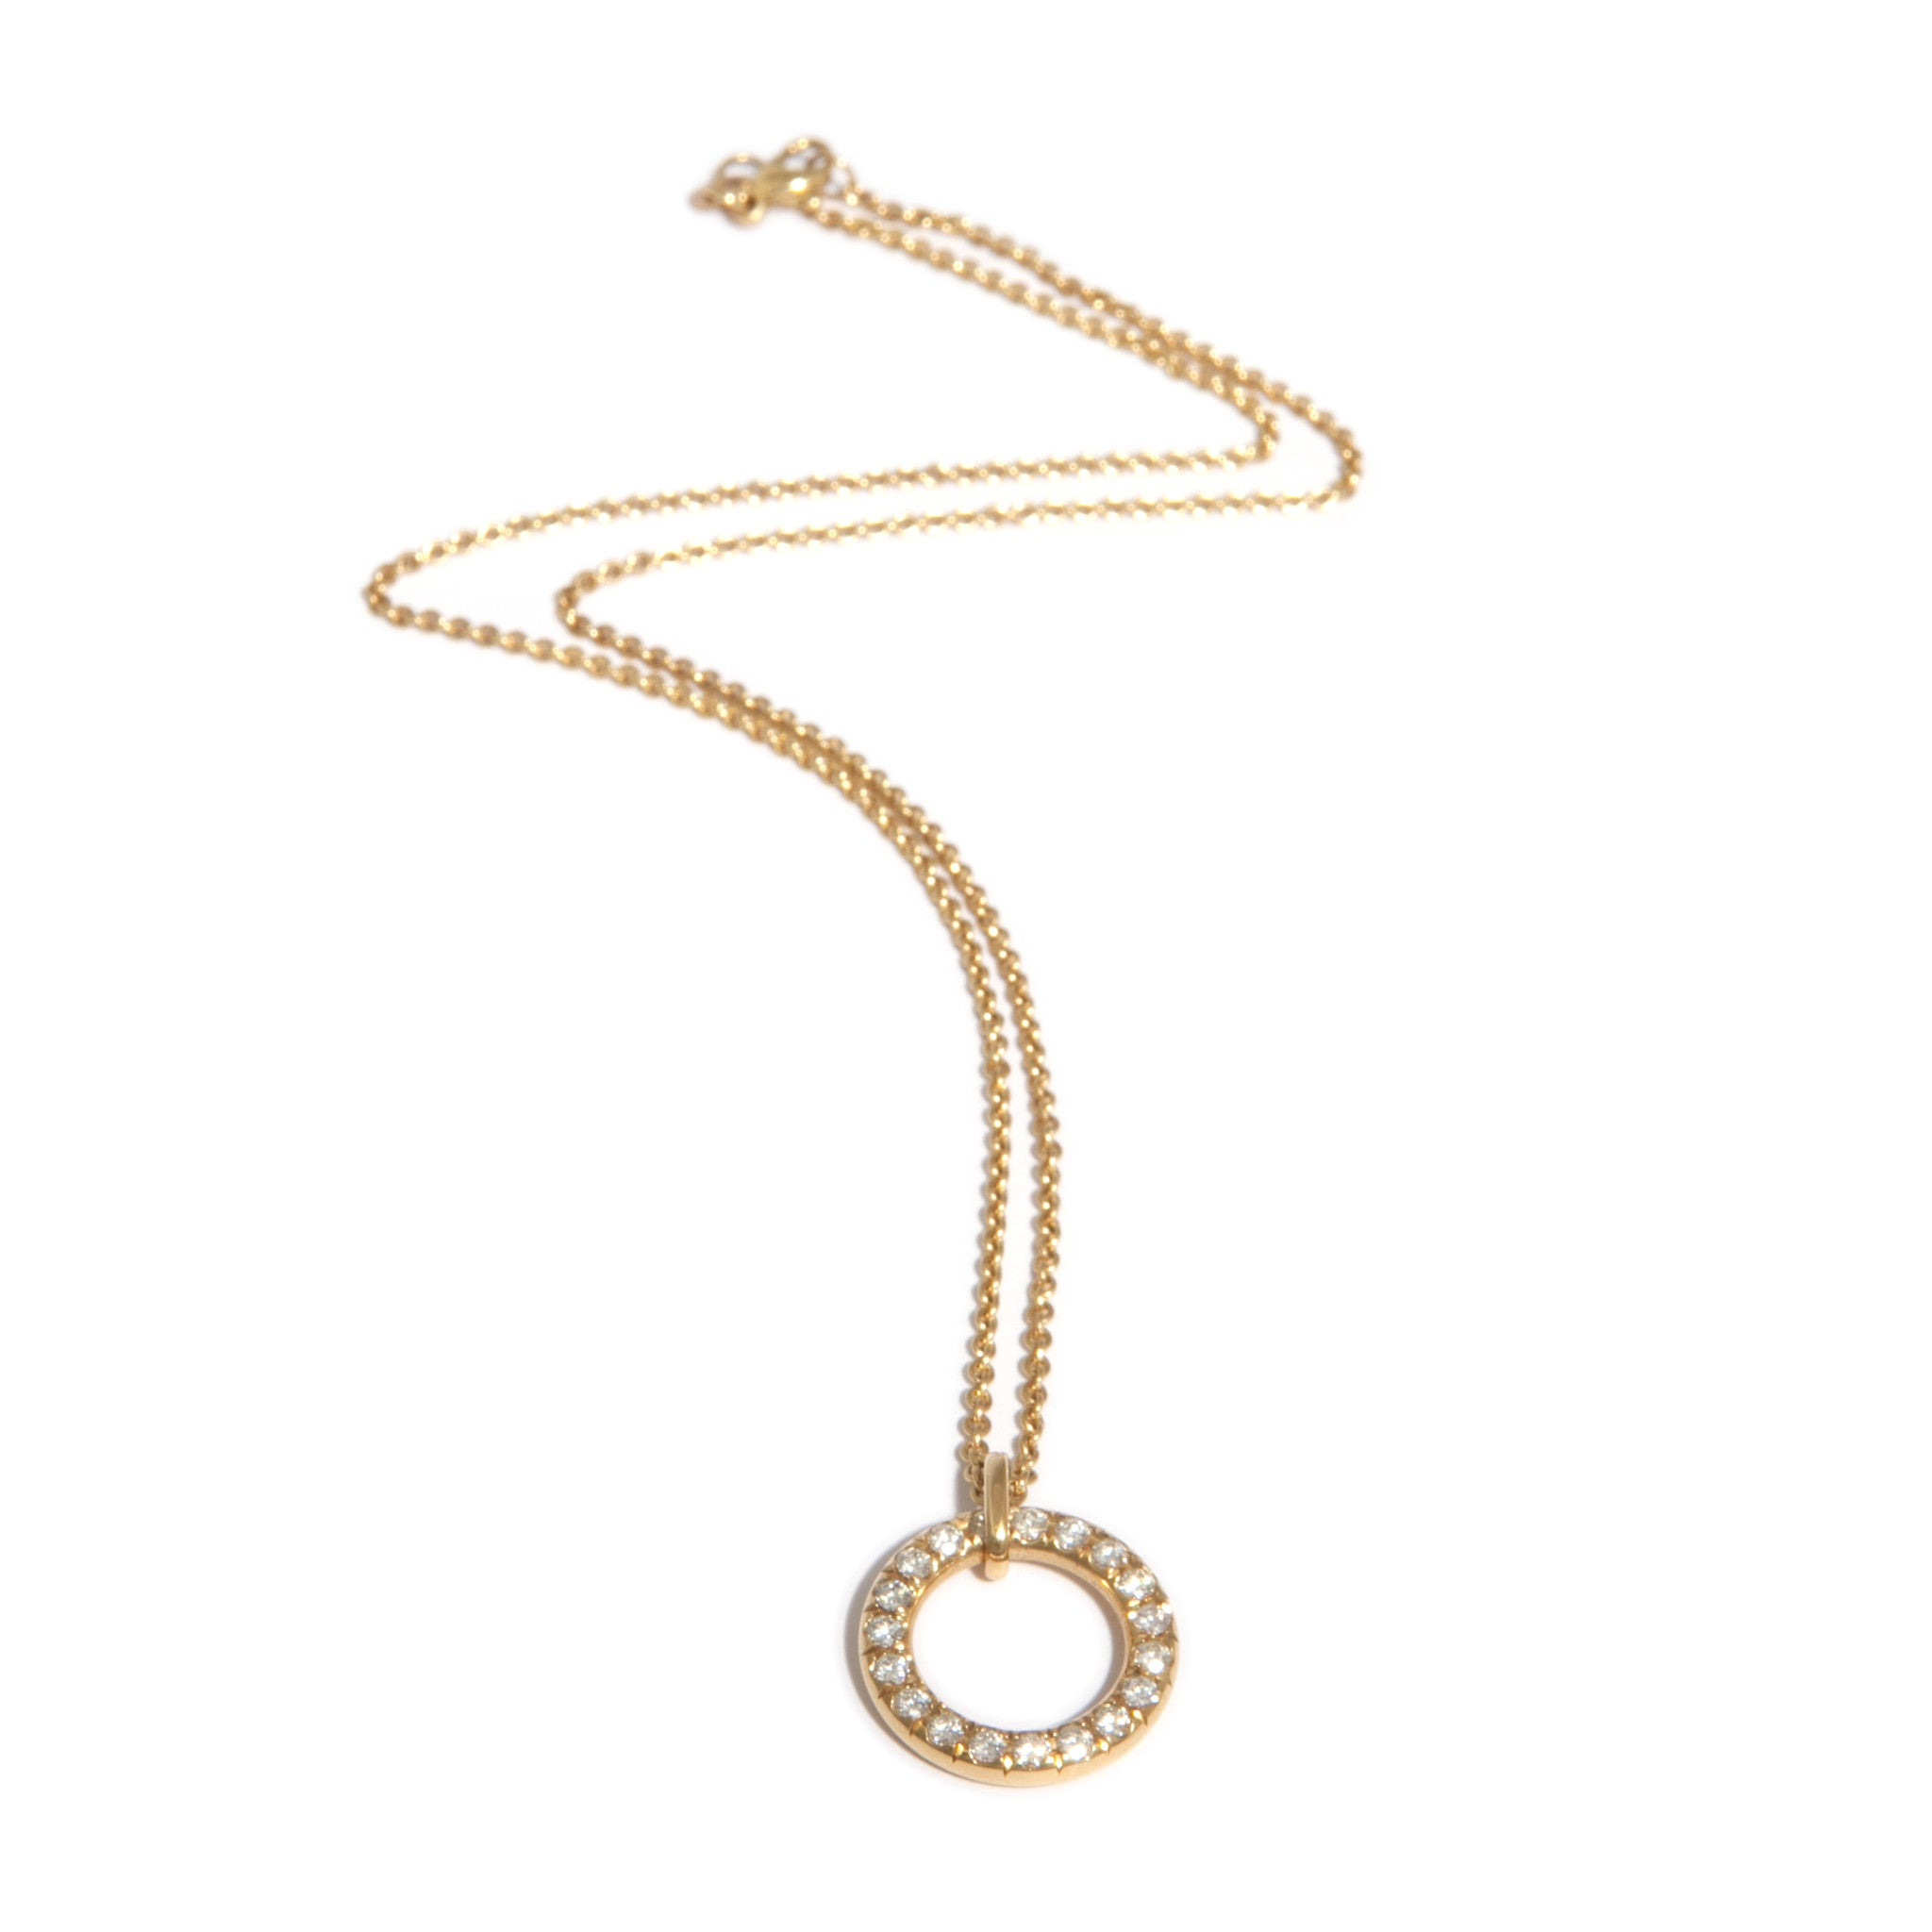 gold circle metallic small coin lyst s necklace women jewelry roberto diamond pendant white